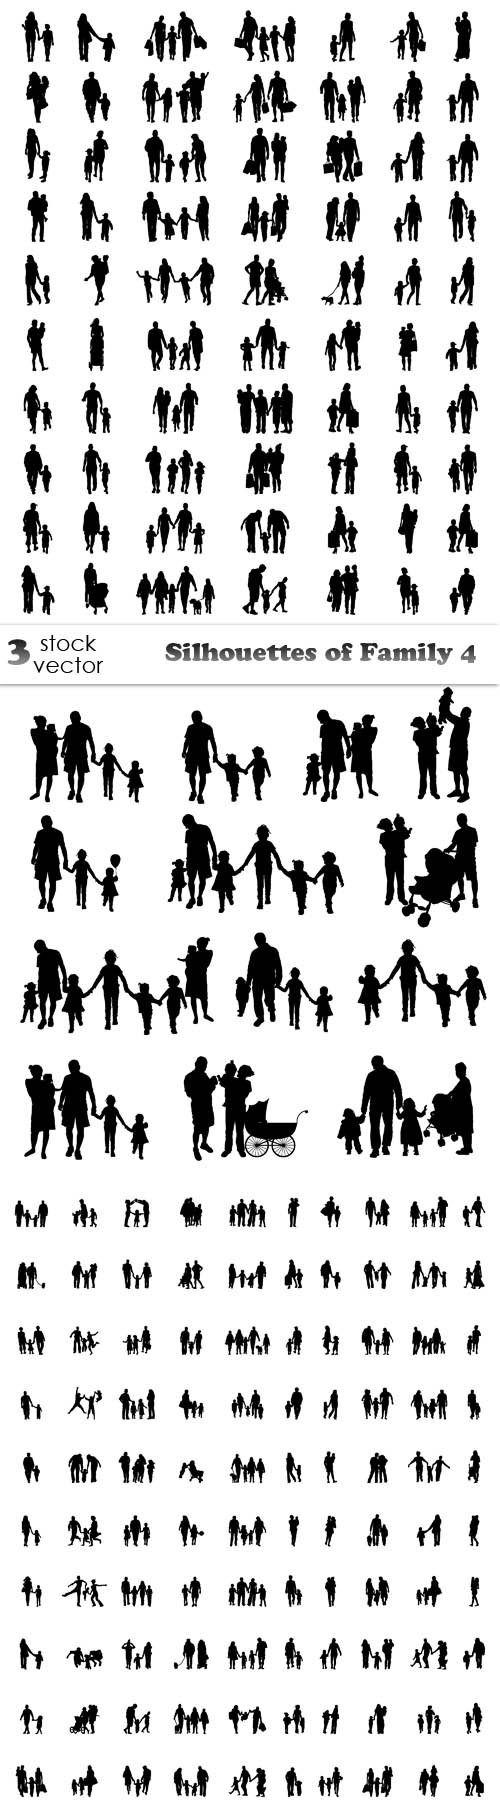 Vectors - Silhouettes of Family 4